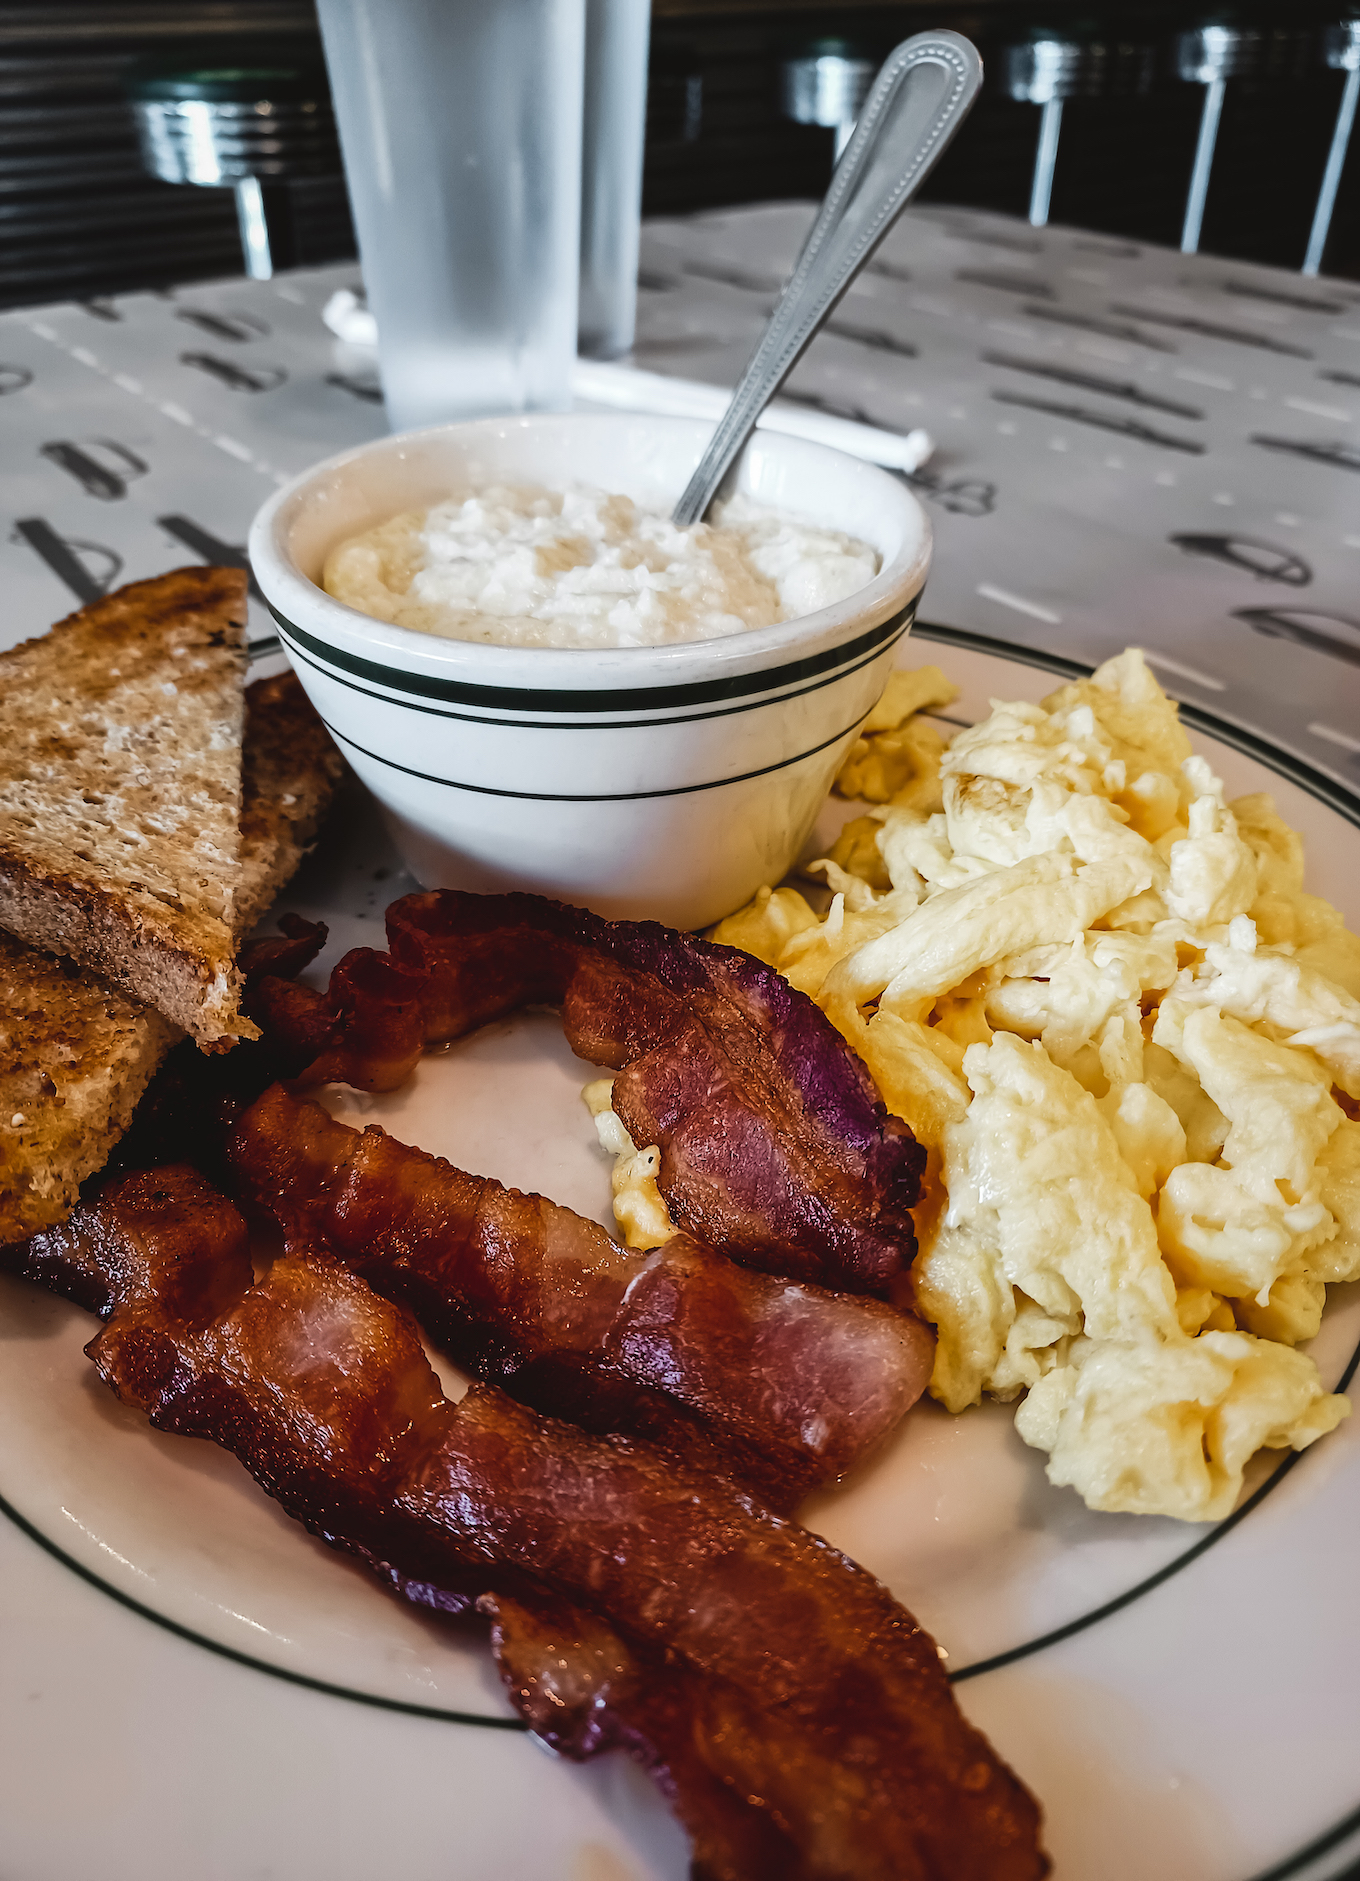 All American breakfast with bacon, eggs and grits